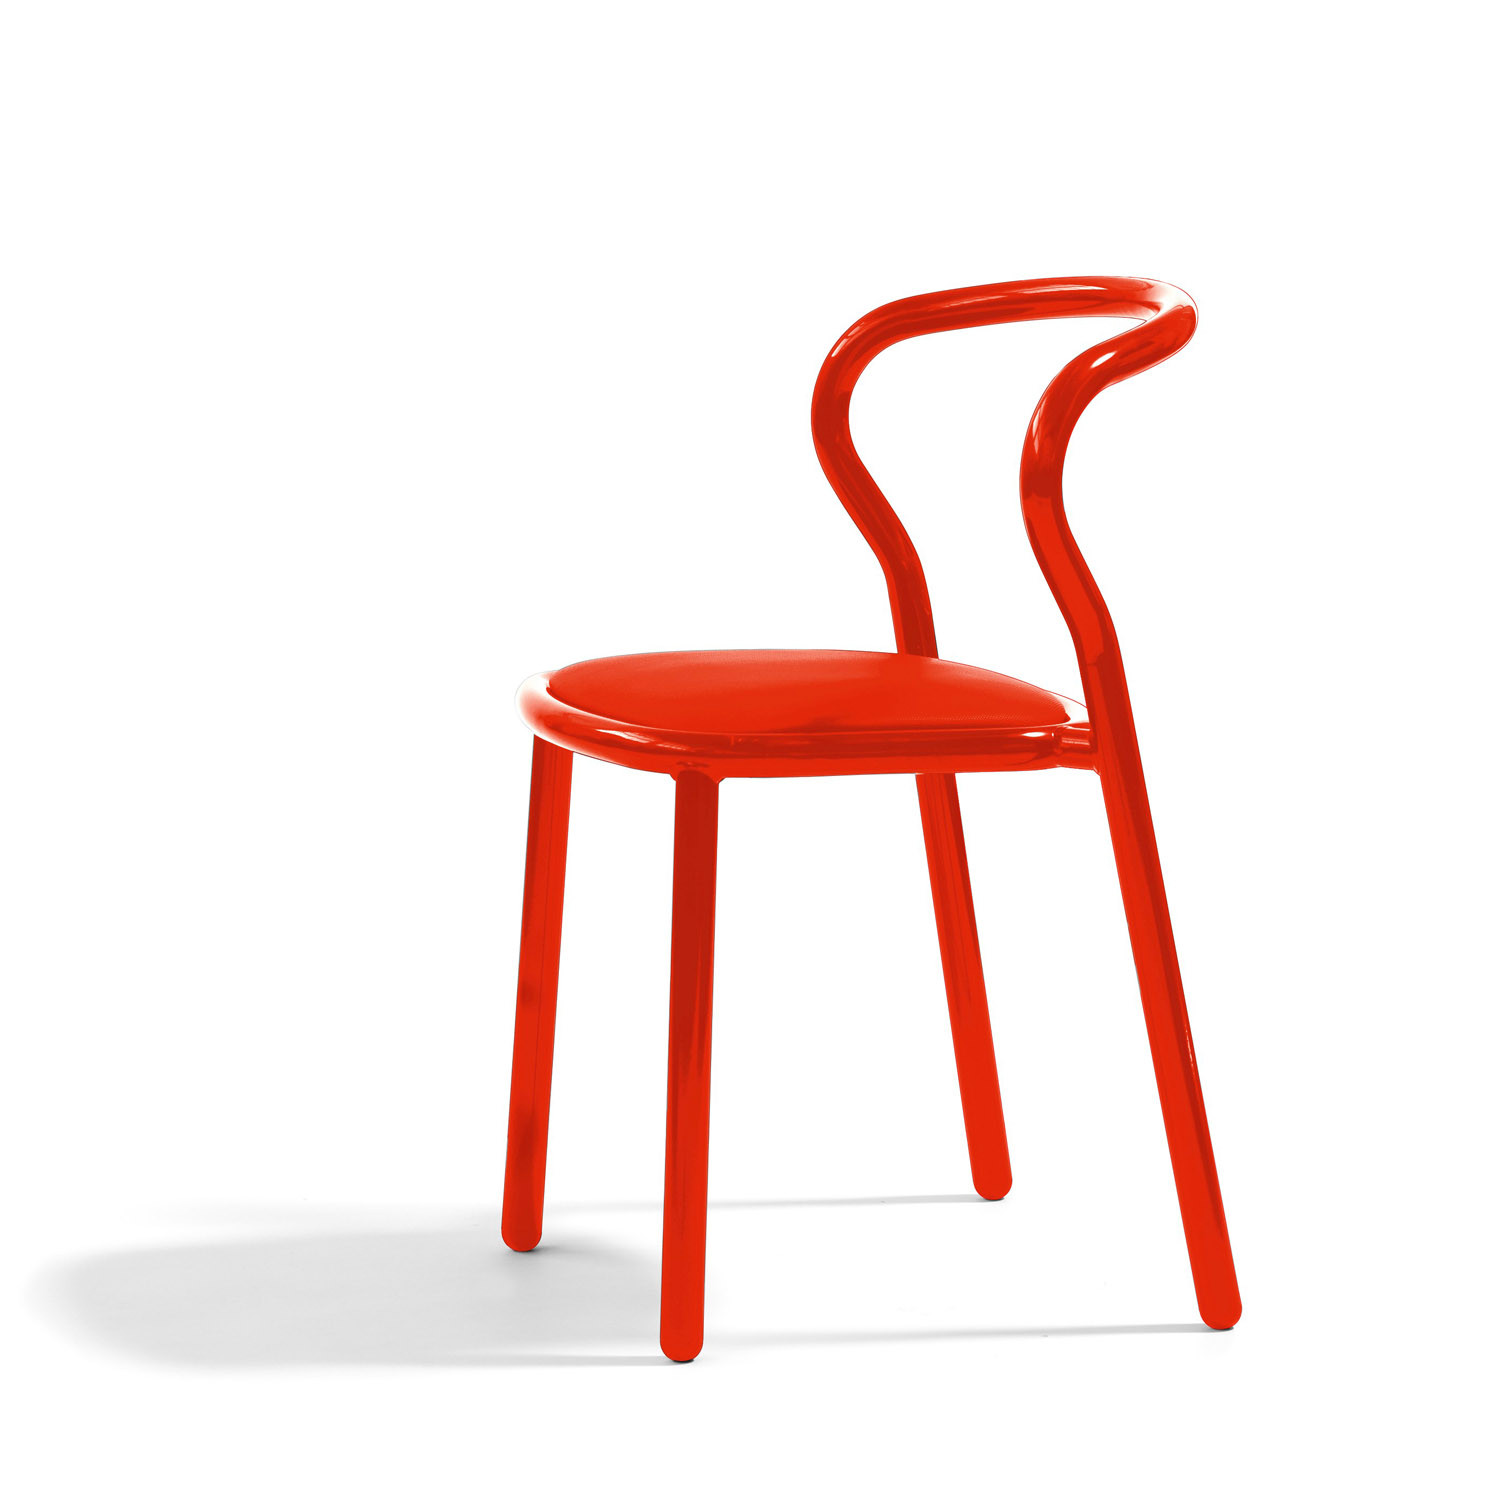 Latte O26 Chair by Bla Station